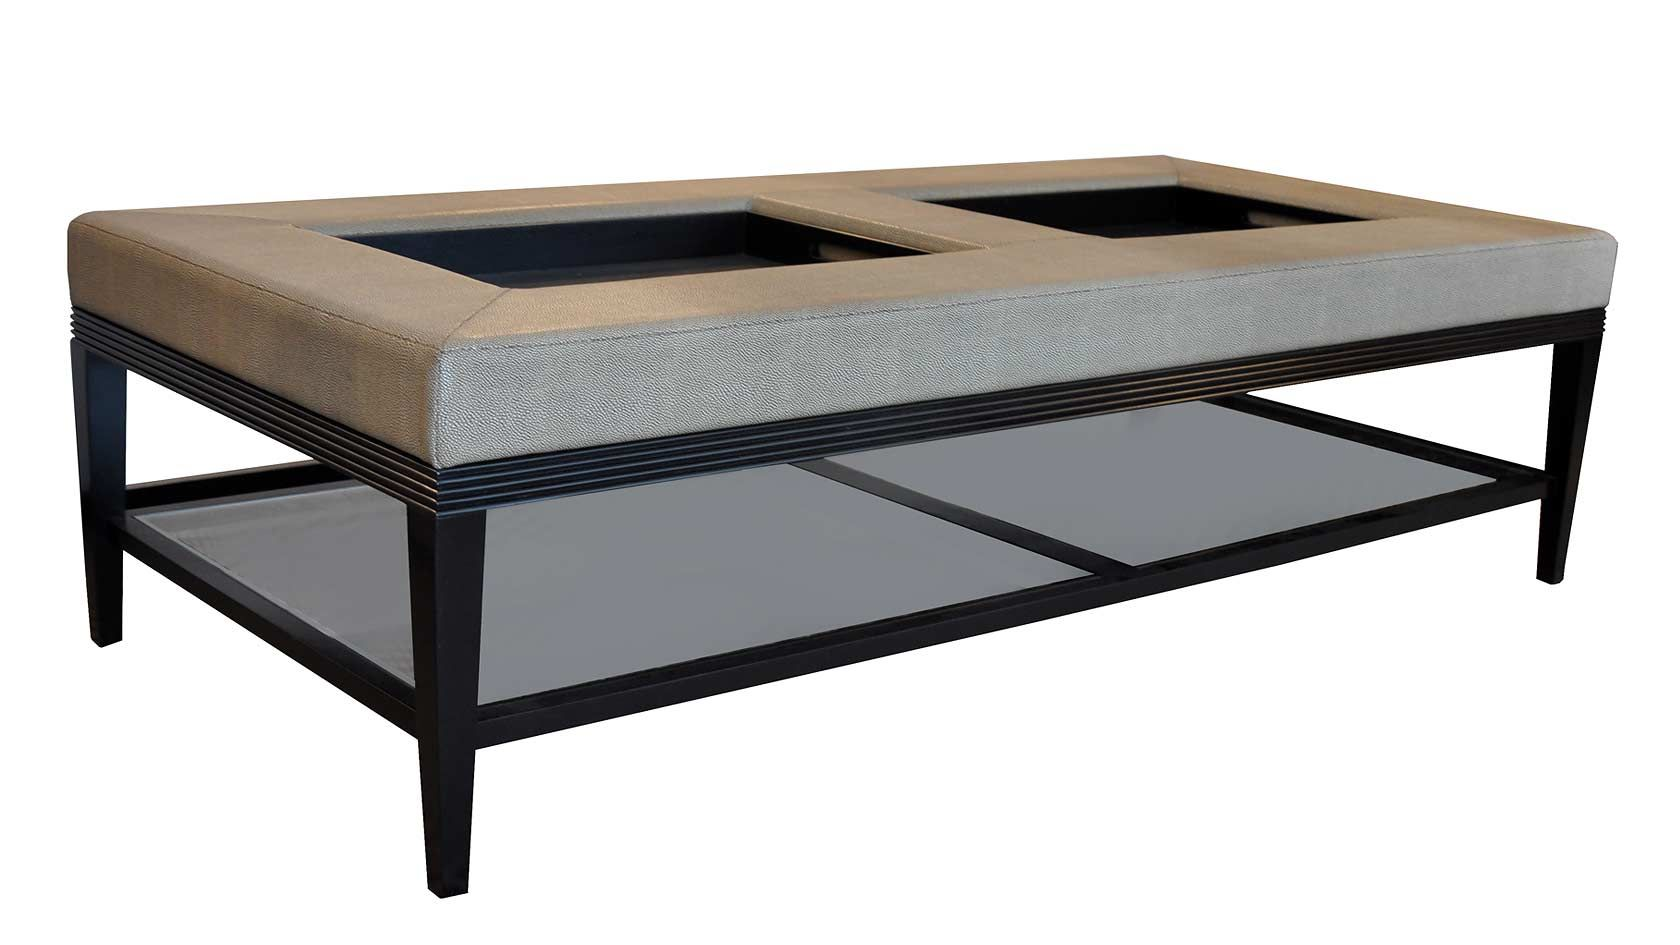 Carlisle Double Coffee Table Ottoman 66 X 30 X 19h Sitting Room Pinterest Shelves Coffee